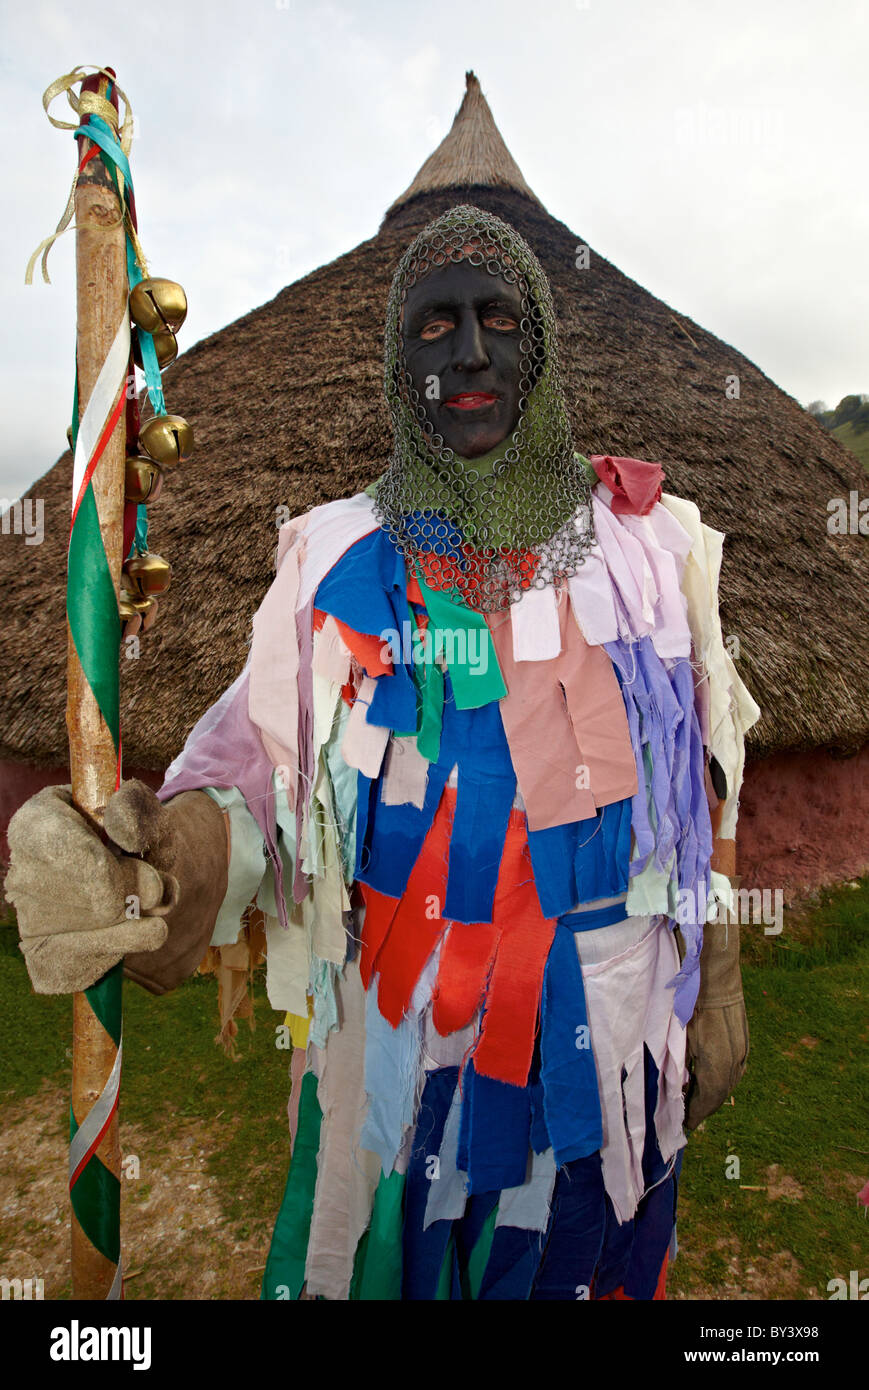 Man Dressed Up as Pagan Warriors The Burning Of the Wickerman Butser Farm Sussex UK - Stock Image